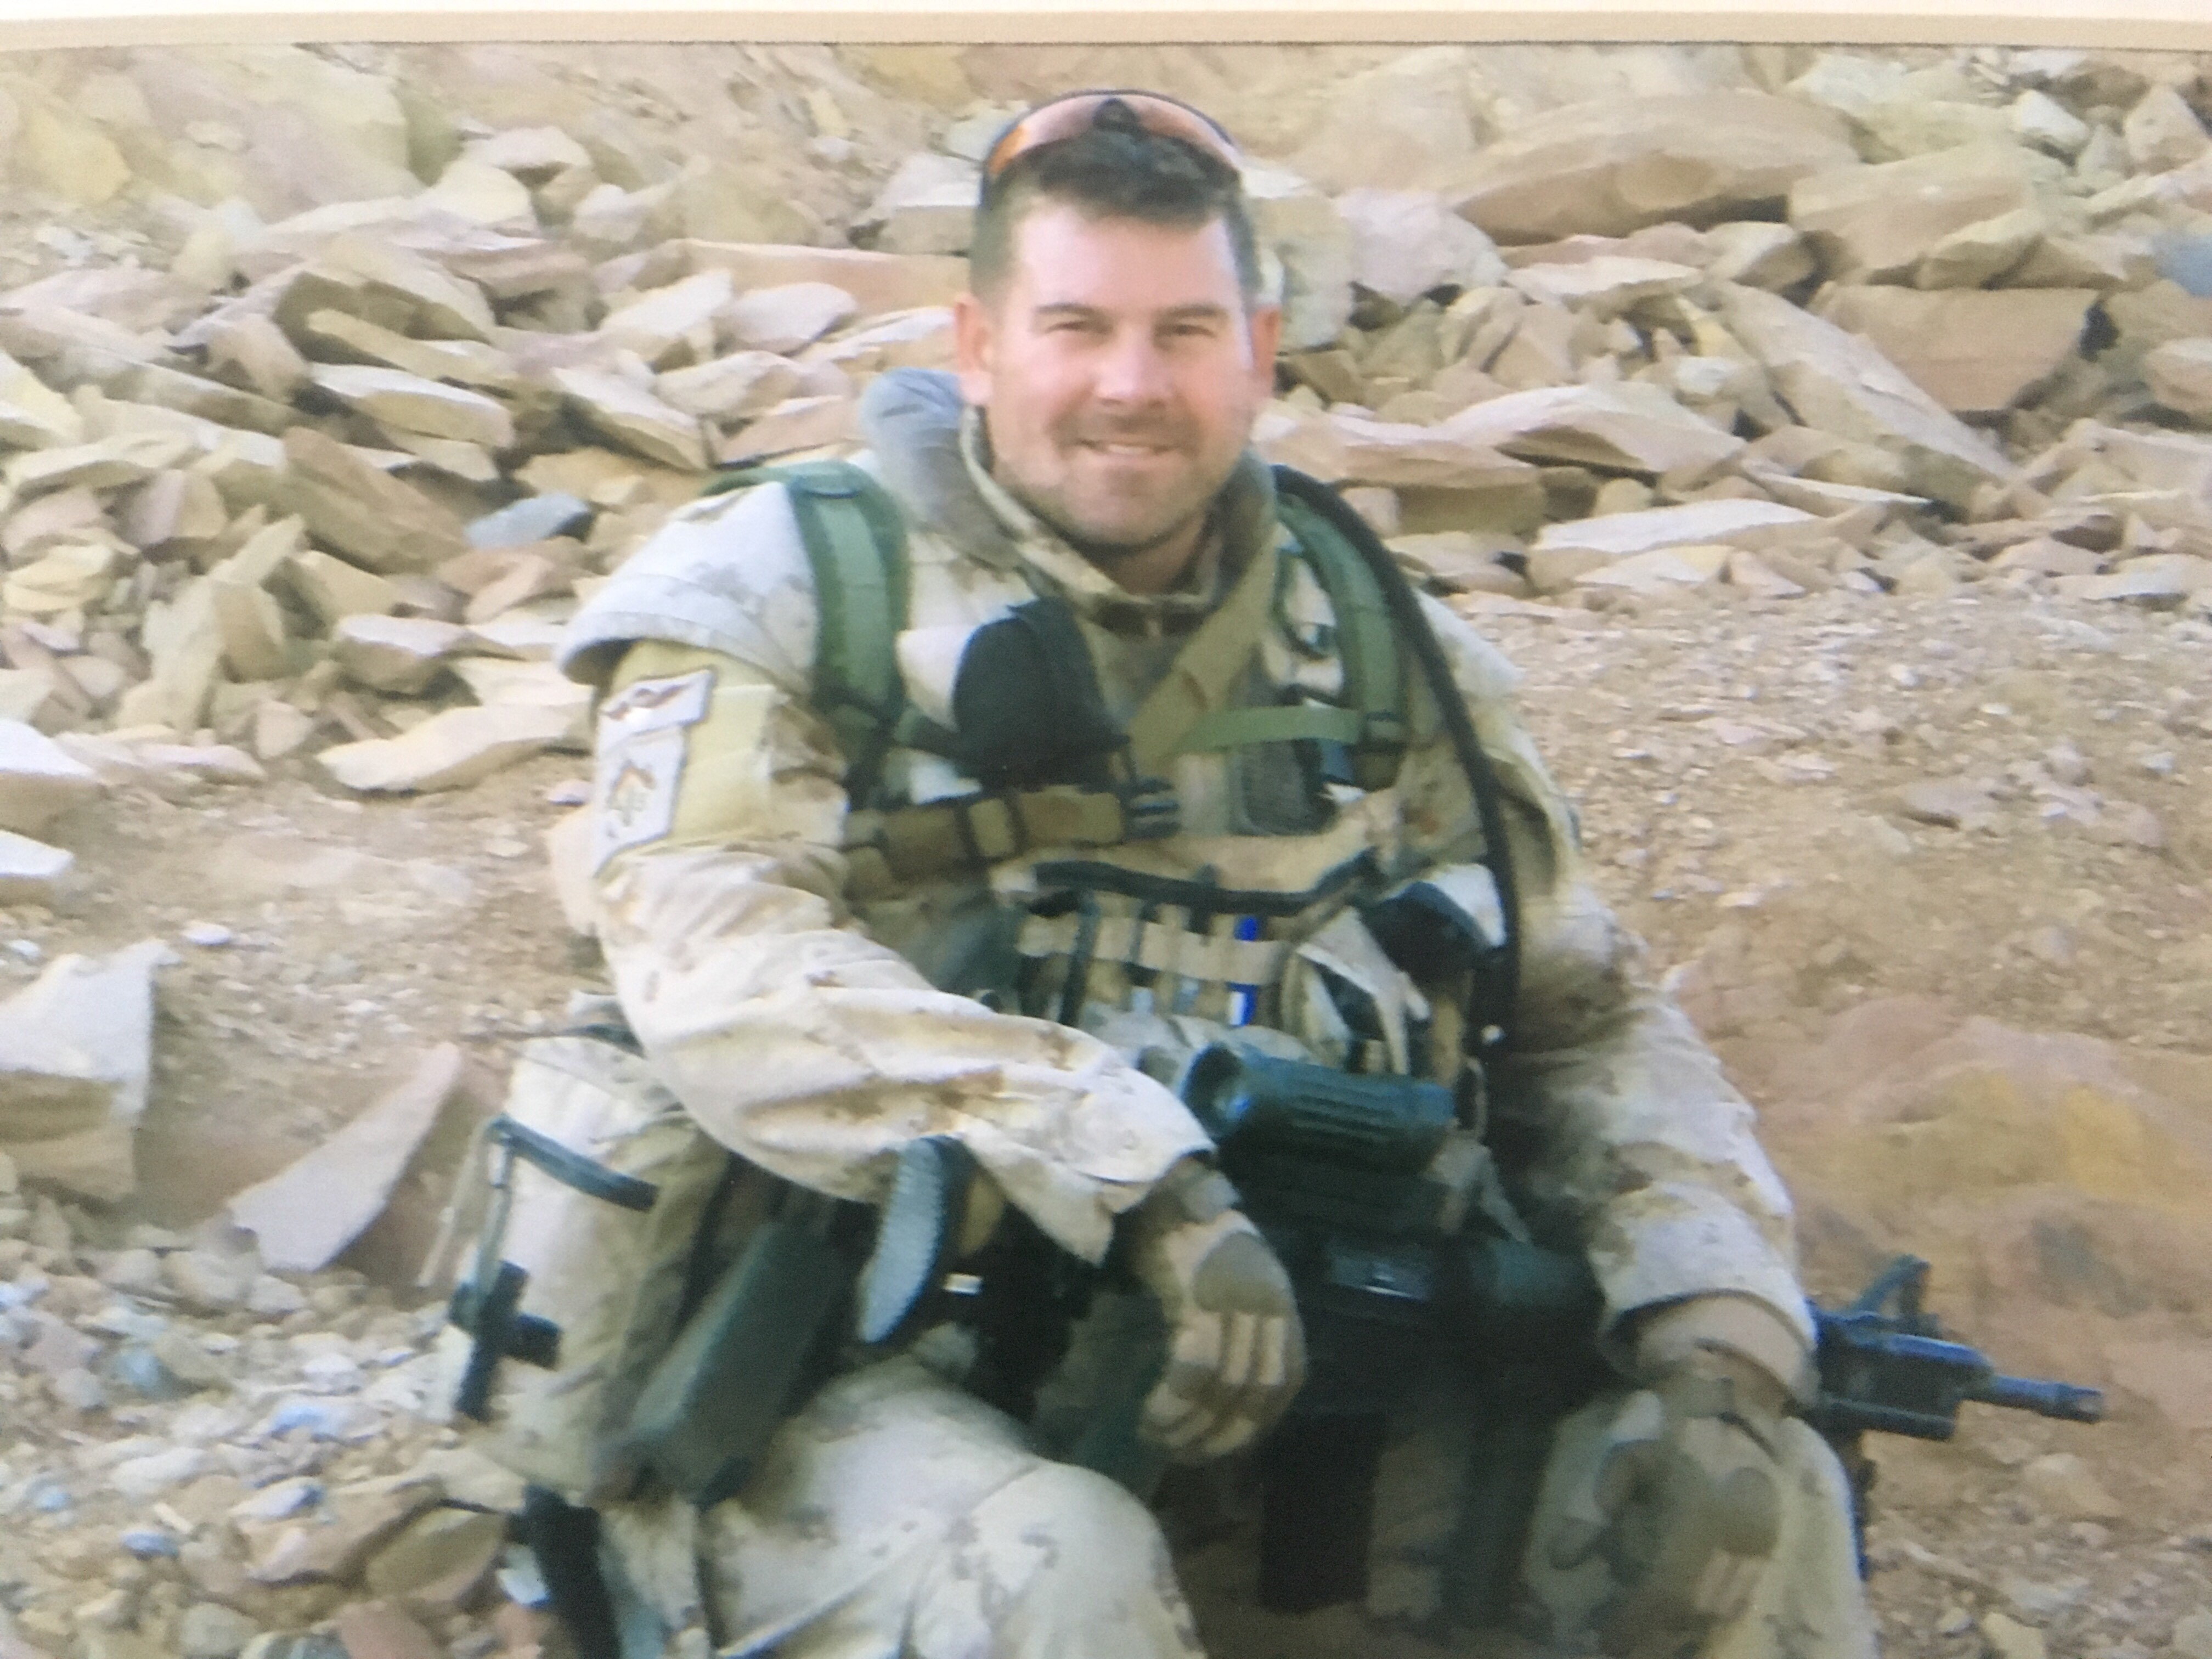 Lee Harrison poses while on tour in Afghanistan TF 3-08